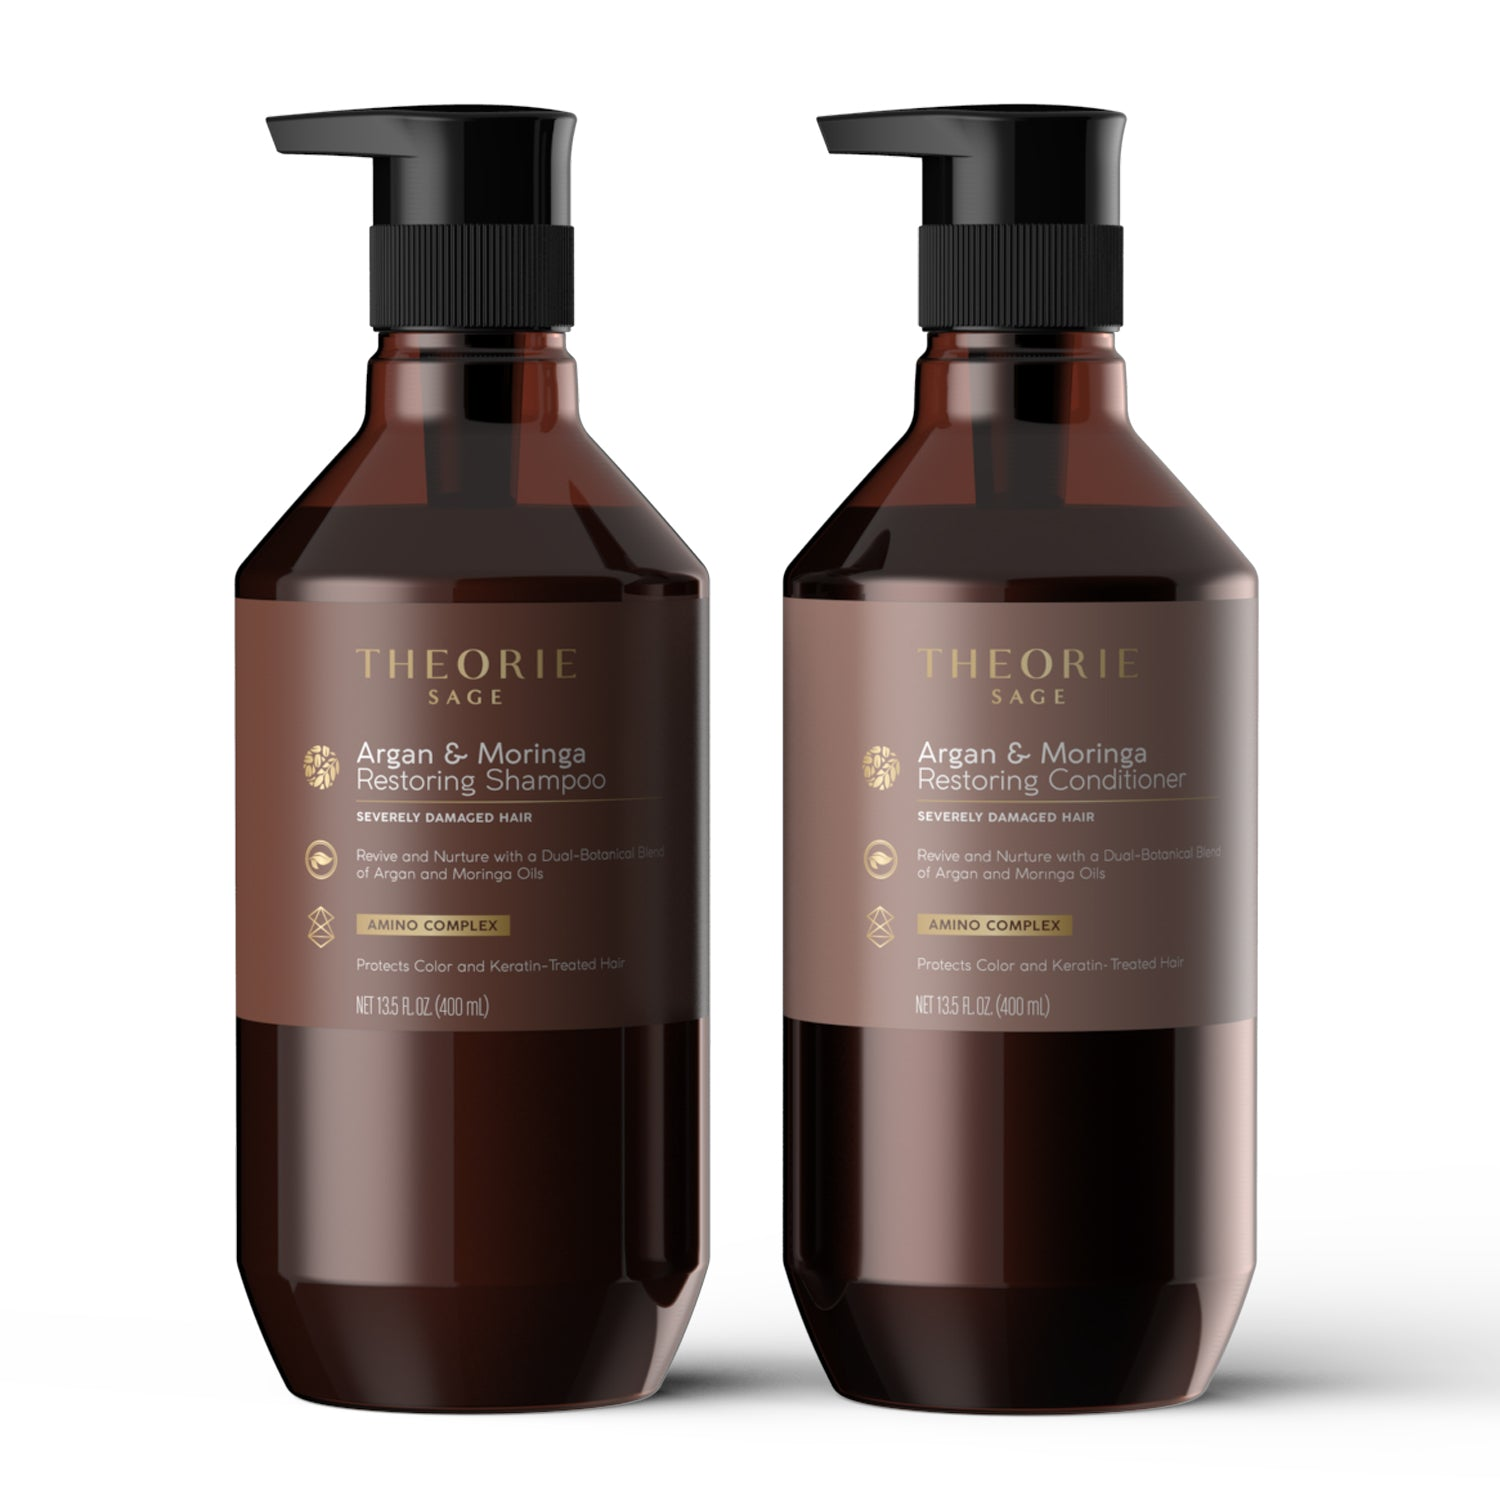 Theorie: Sage - Argan & Moringa Restoring Shampoo & Condition Set